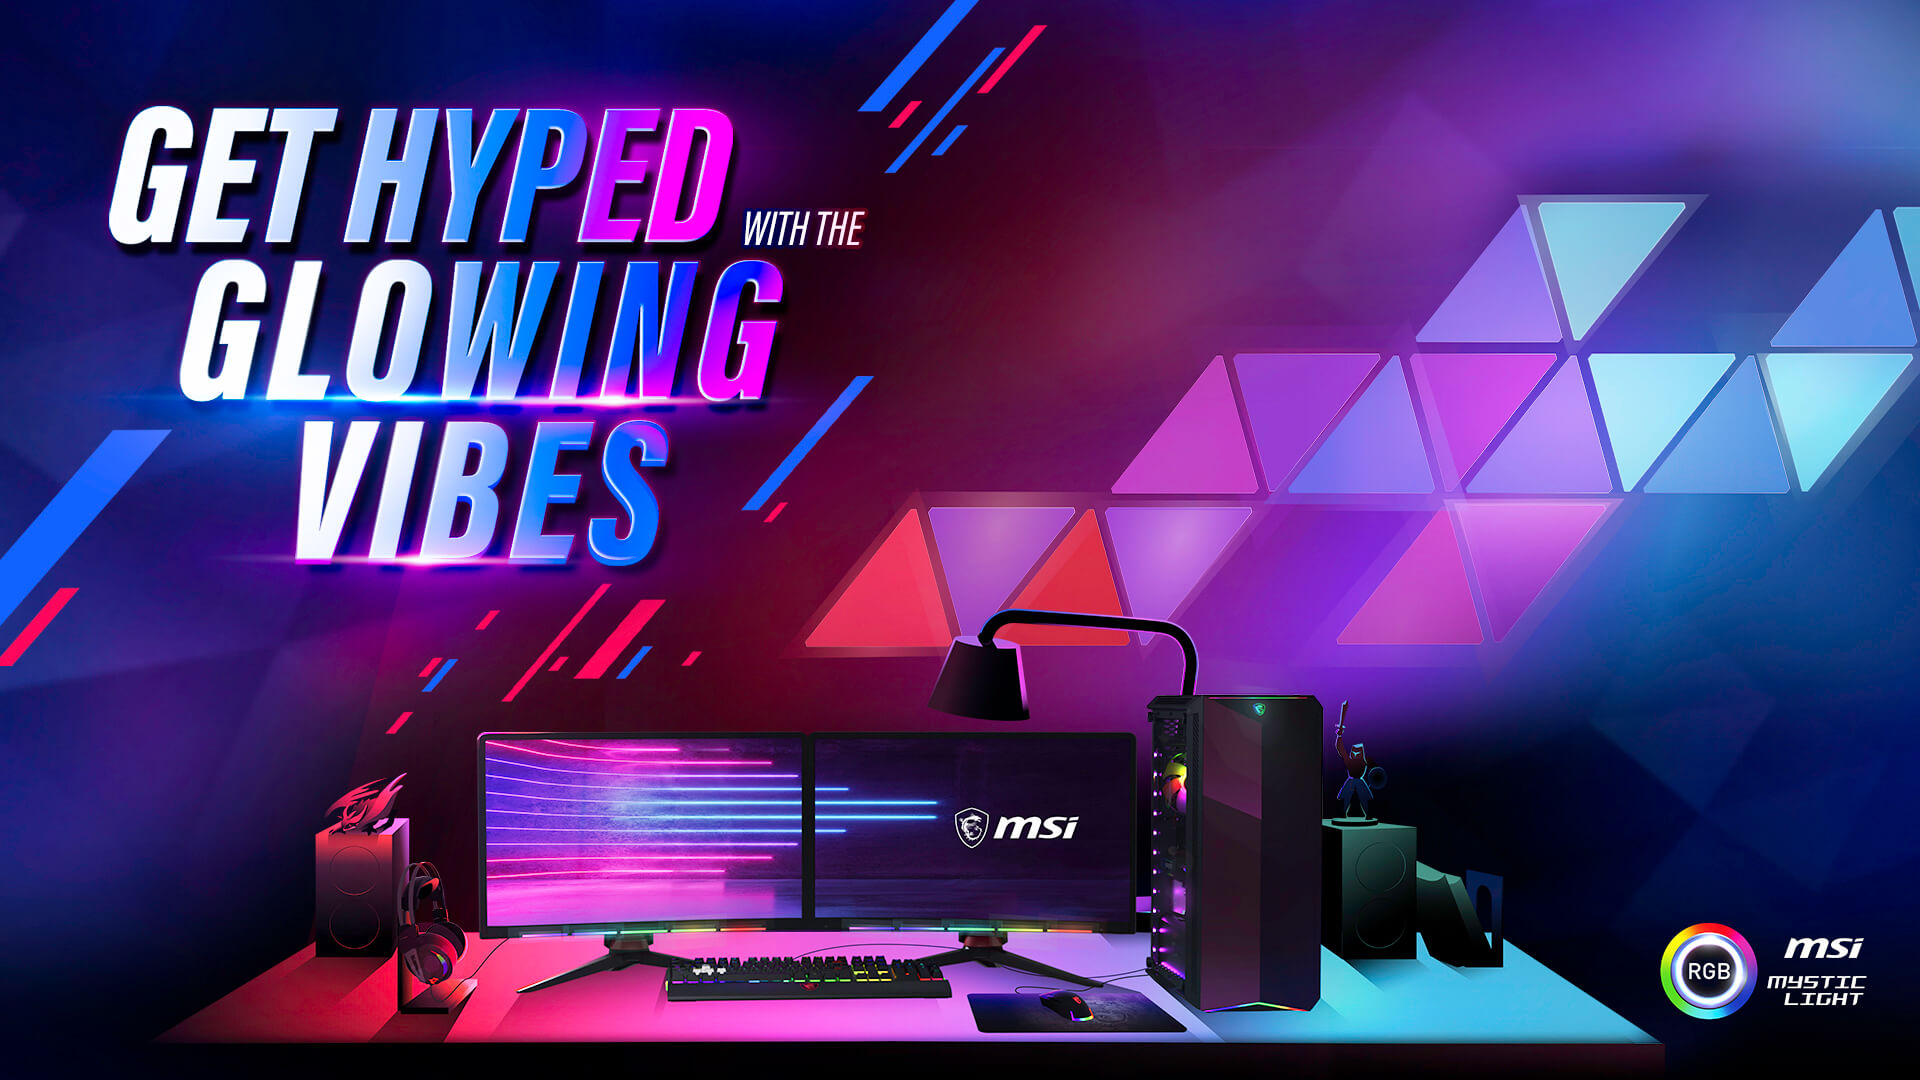 Mystic Light Rgb Gaming Pc Recommended Rgb Pc Parts Peripherals Msi Check out mystic light compatible products and build your glorious. mystic light rgb gaming pc